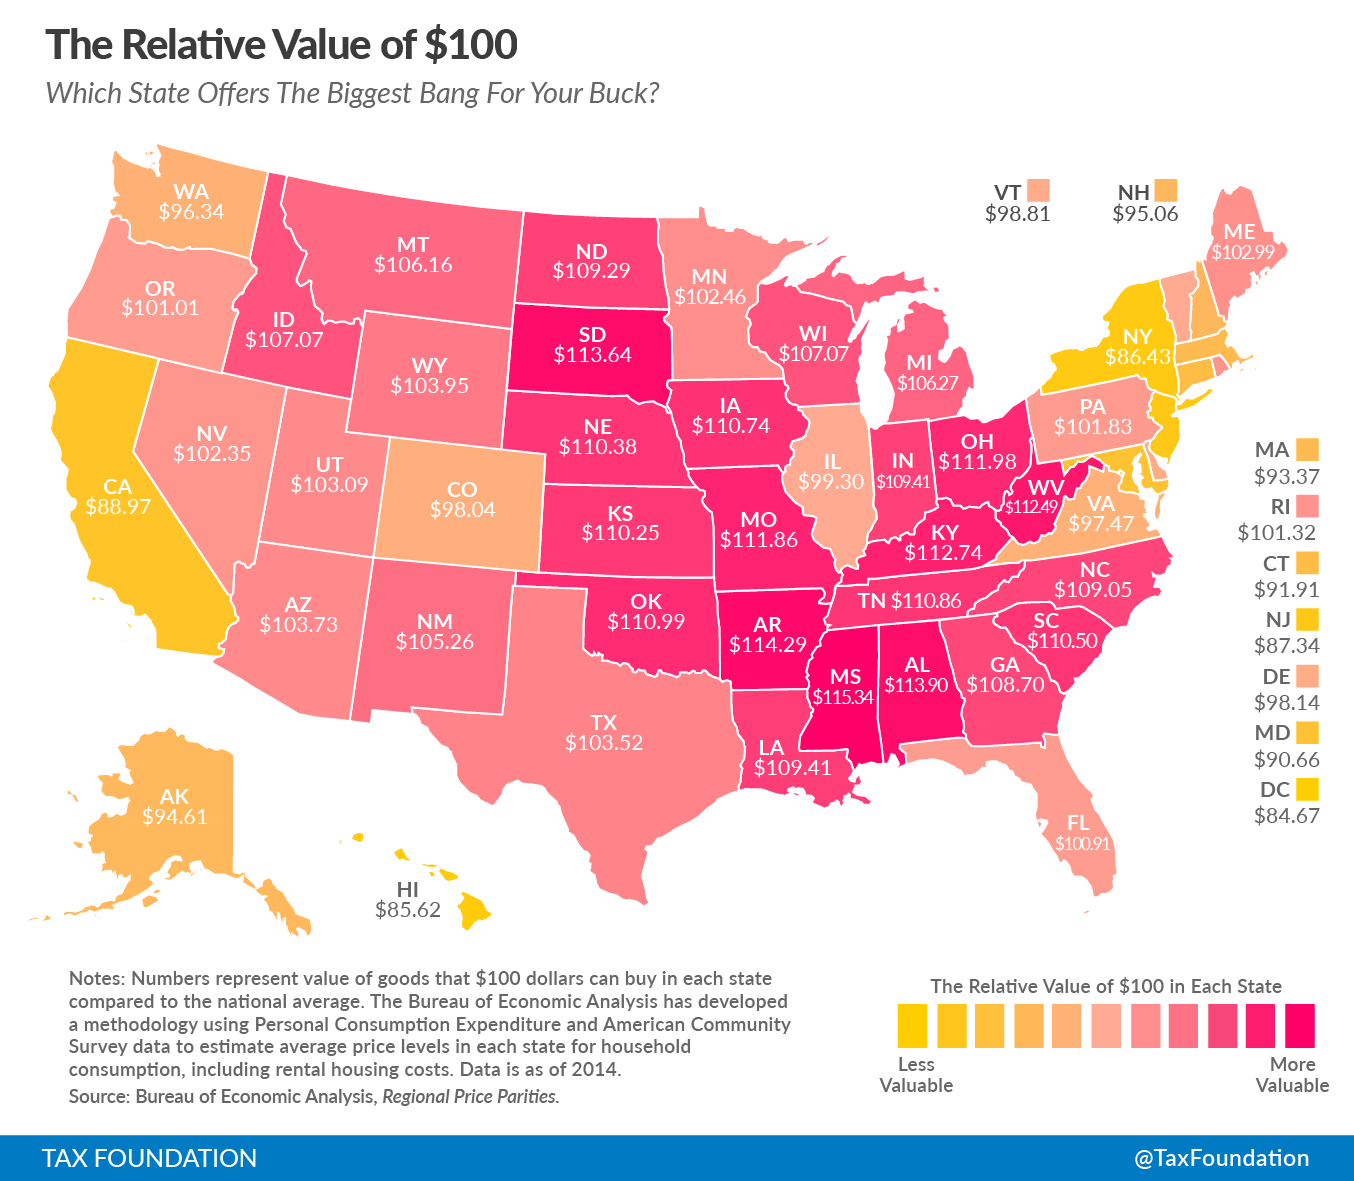 Depending on your state, $100 isn't worth $100